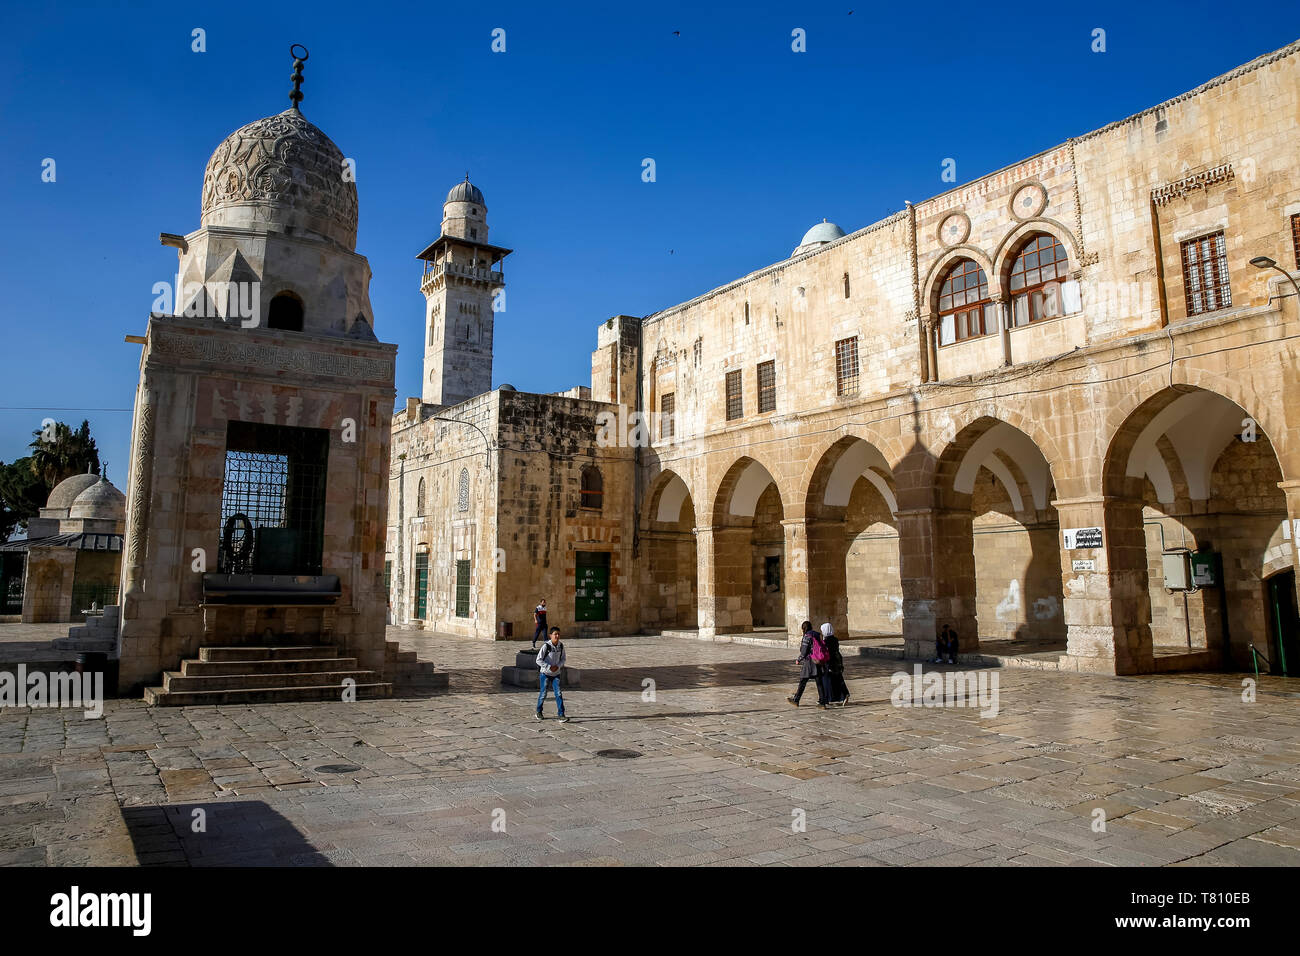 Shrines on the Haram esh-Sharif (Al Aqsa compound) (Temple Mount), UNESCO World Heritage Site, Jerusalem, Israel, Middle East - Stock Image